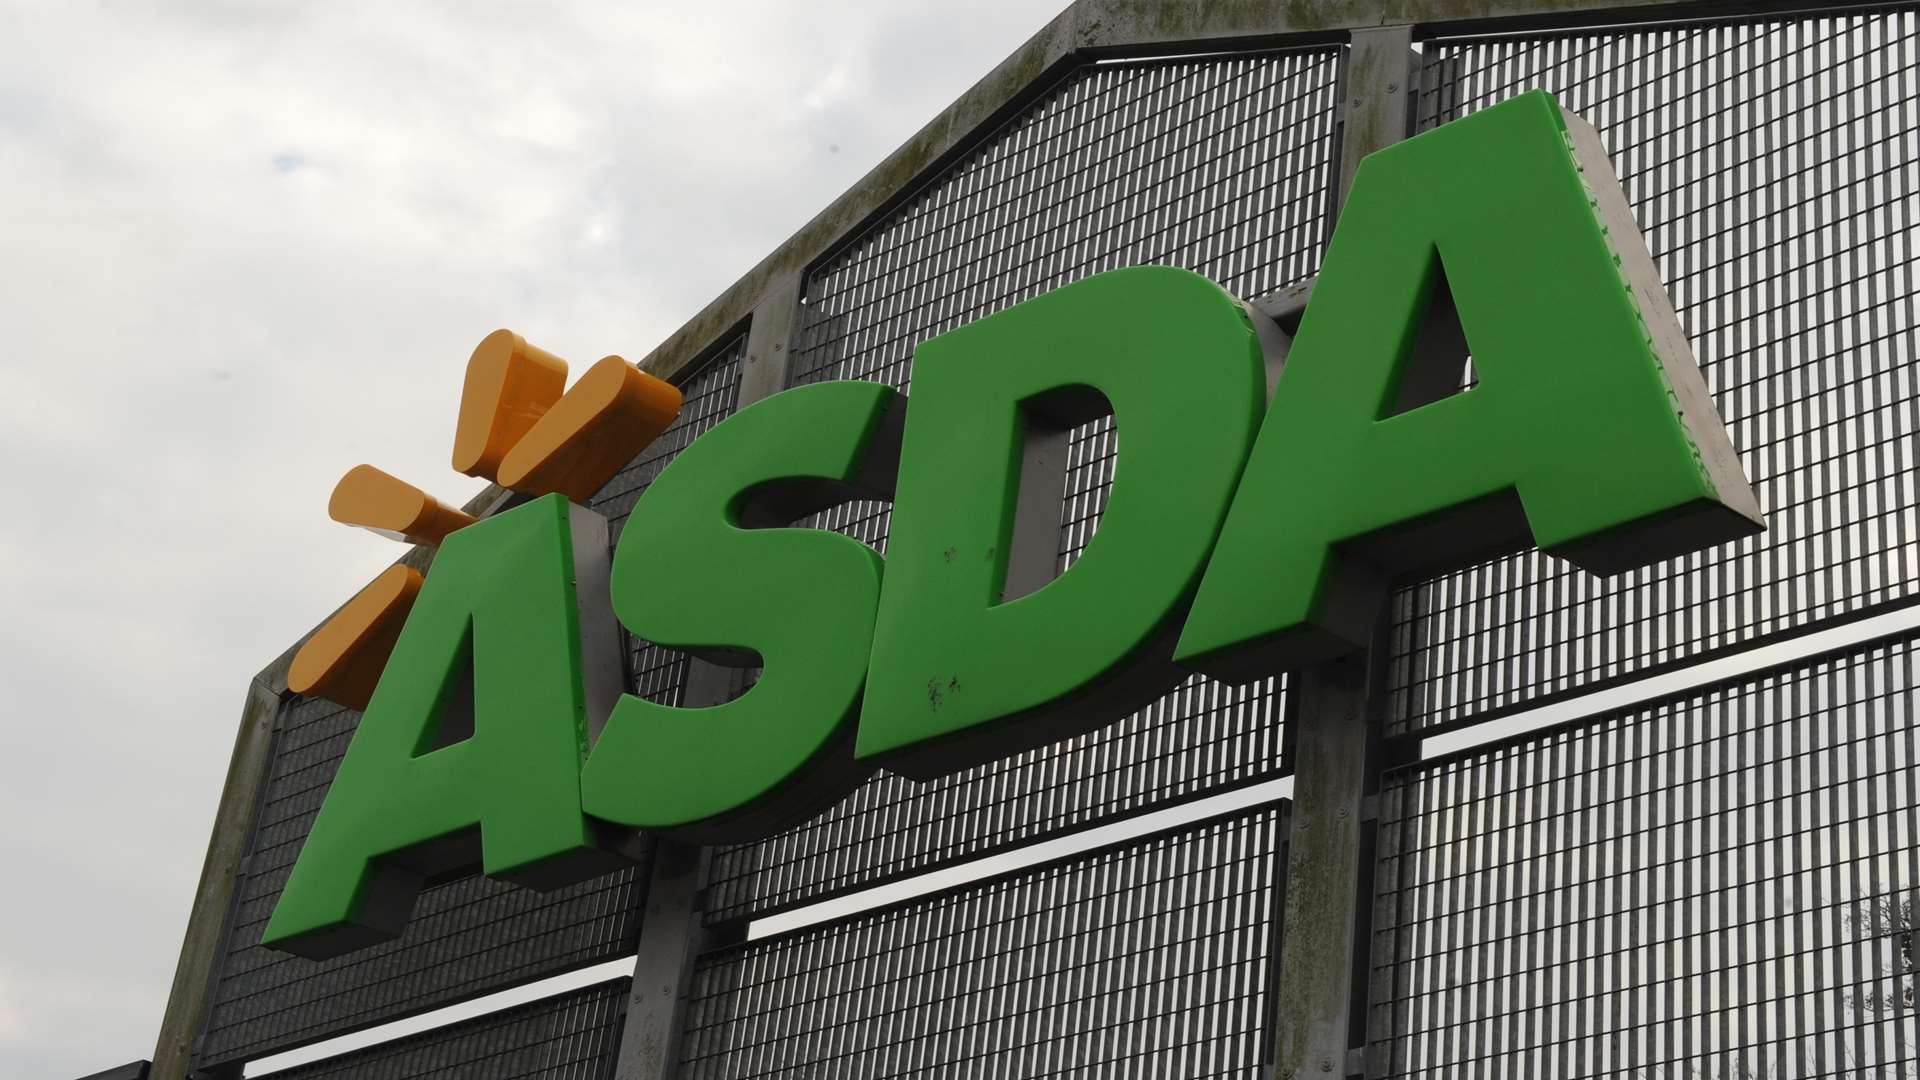 Asda in Ramsgate remains shut. Stock image